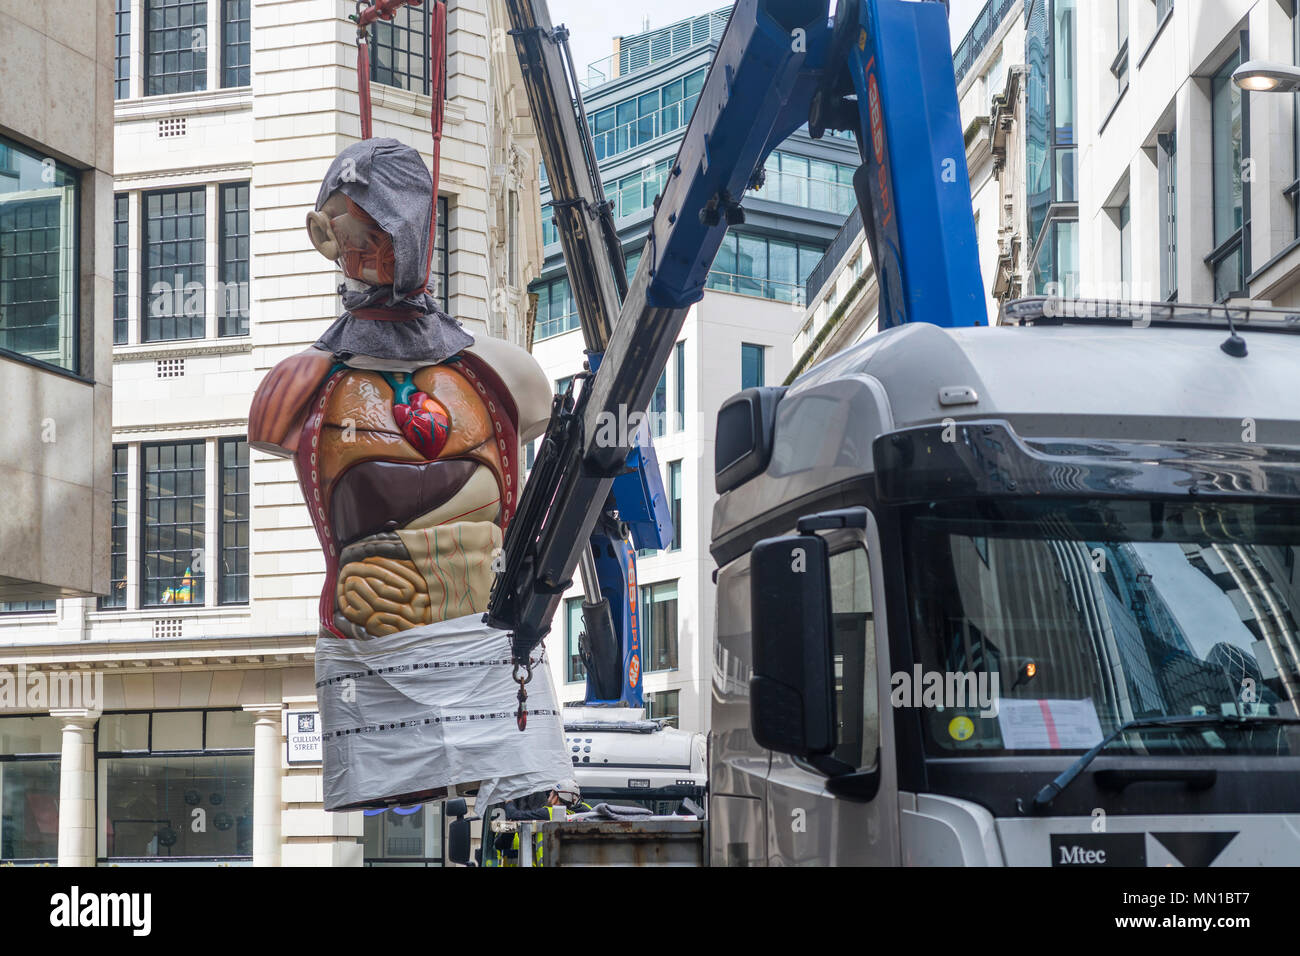 London, UK. 13th May, 2018. Damien Hirst's 'Temple' (2008) is being removed using a crane. The bronze sculpture was displayed in the City of London as part of Sculpture in the City until May 13, 2018 Credit: michelmond/Alamy Live News Stock Photo